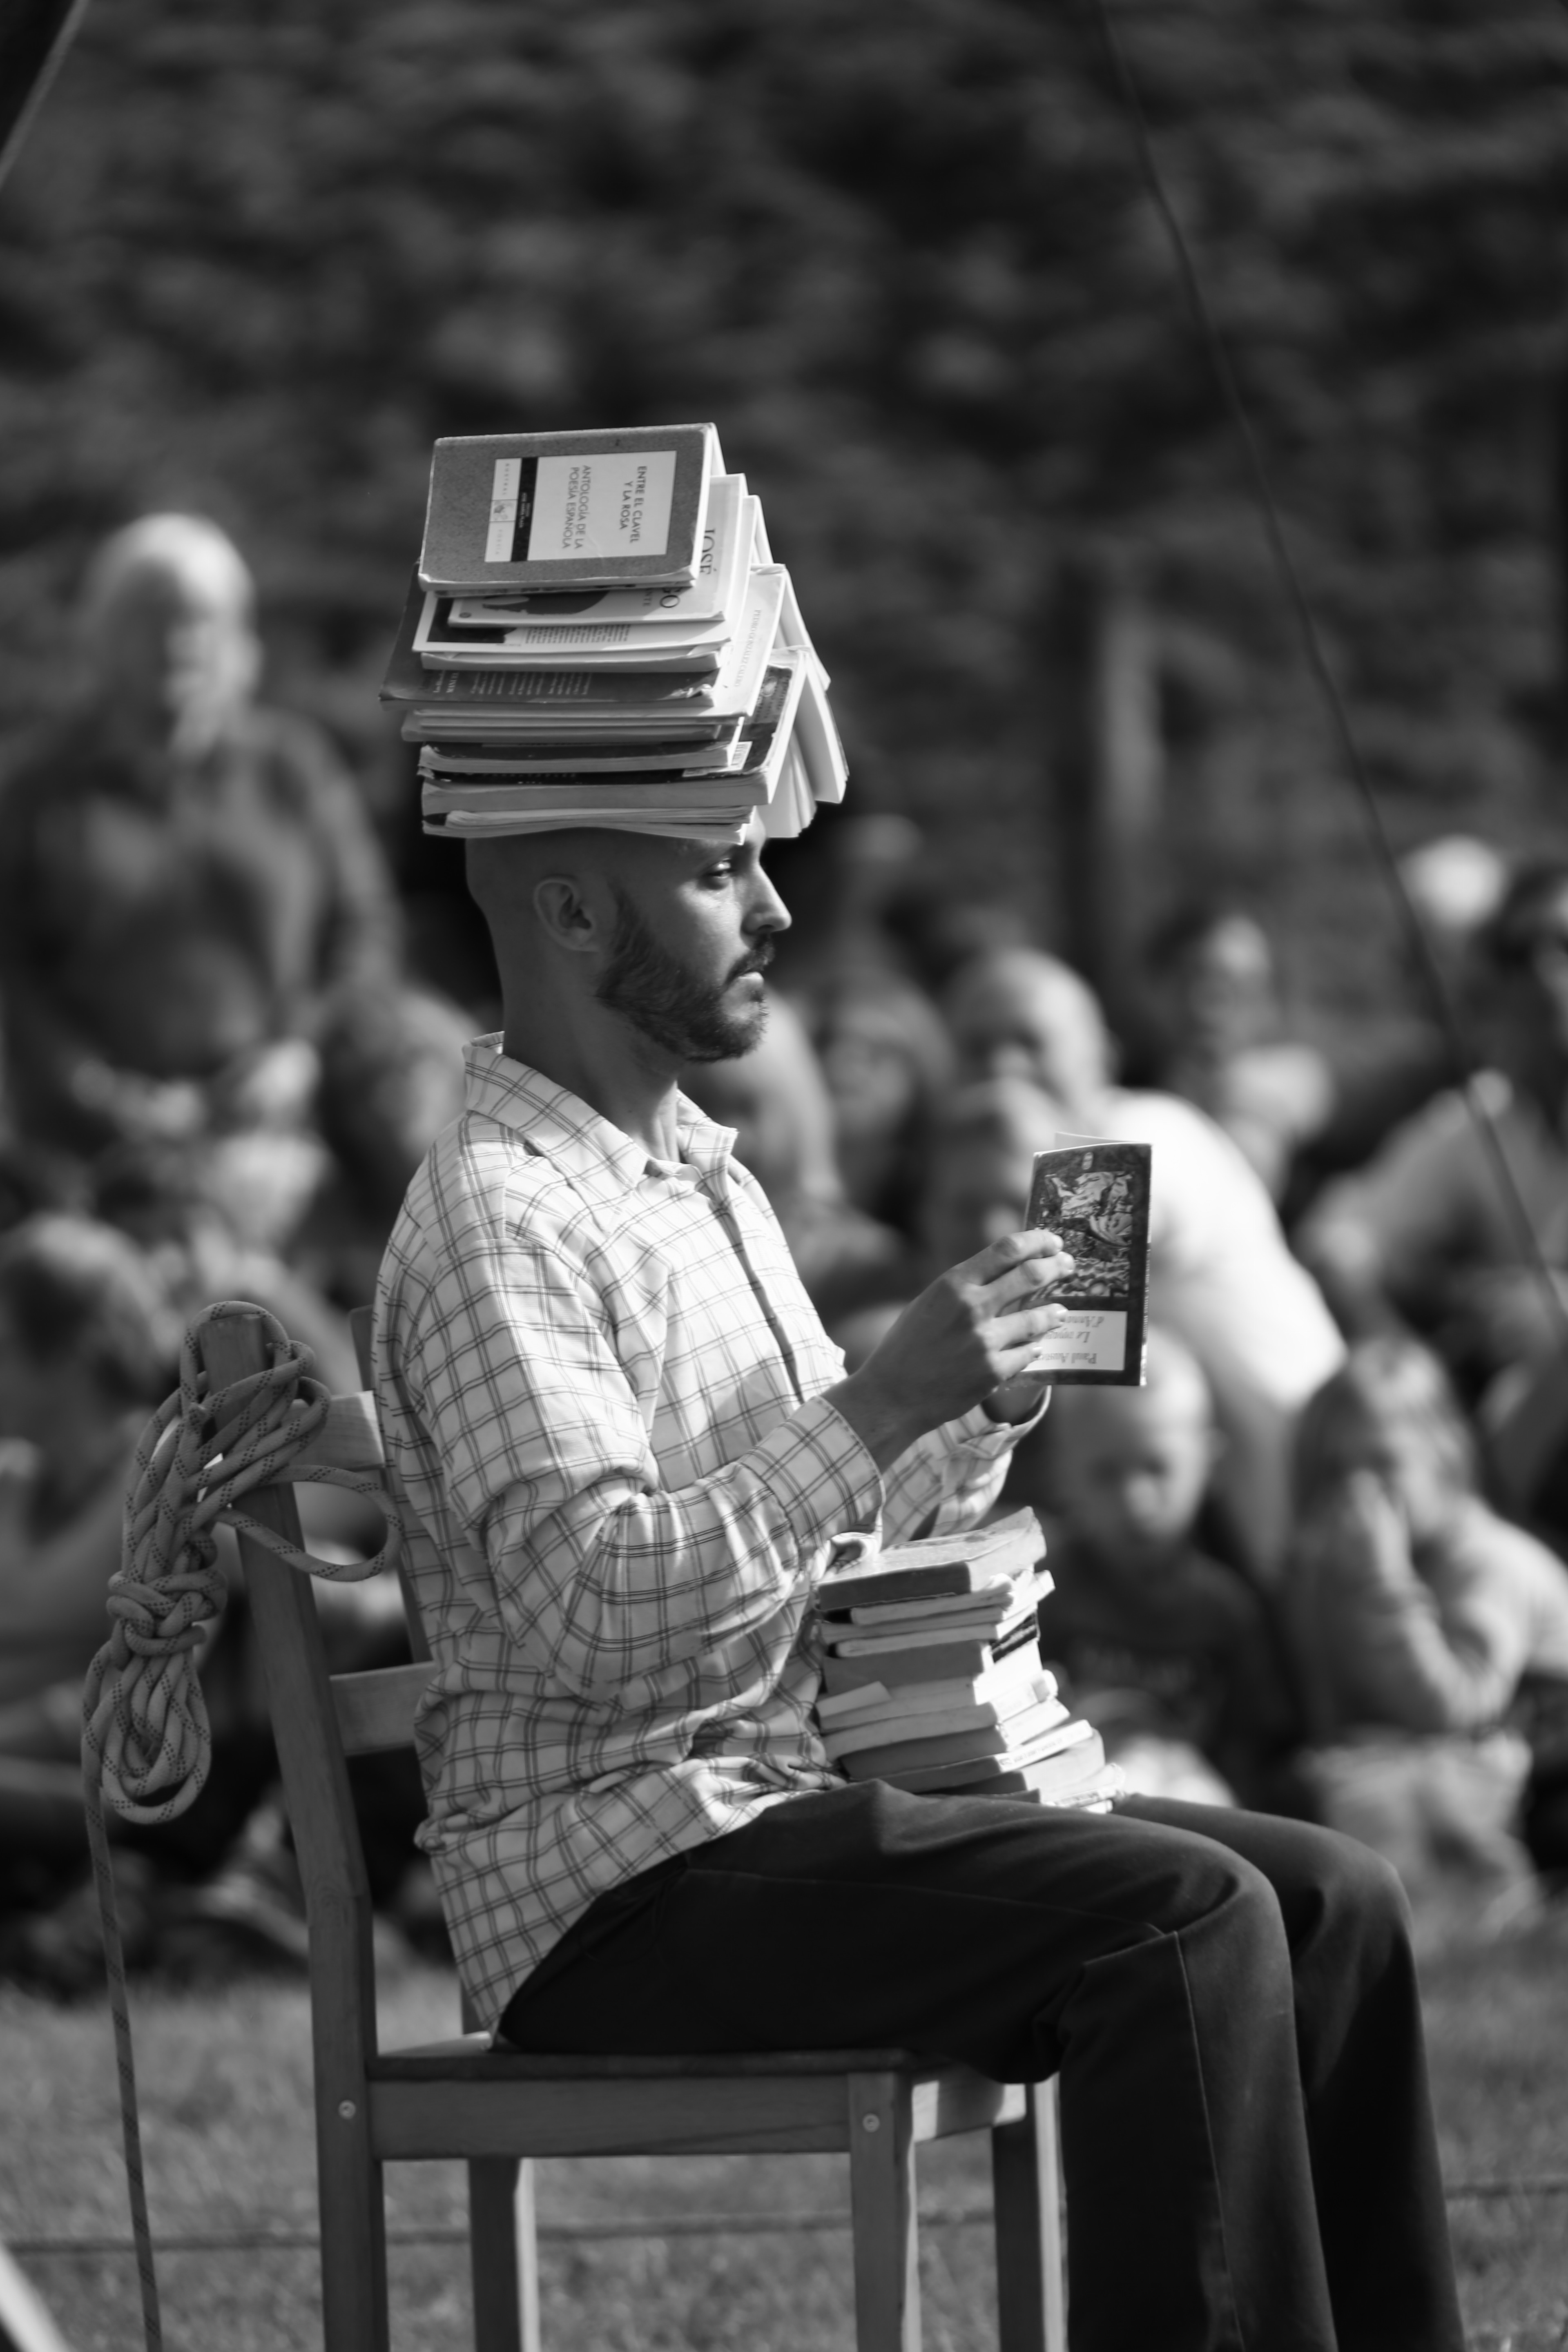 Balancing a Book Pile on Your Head